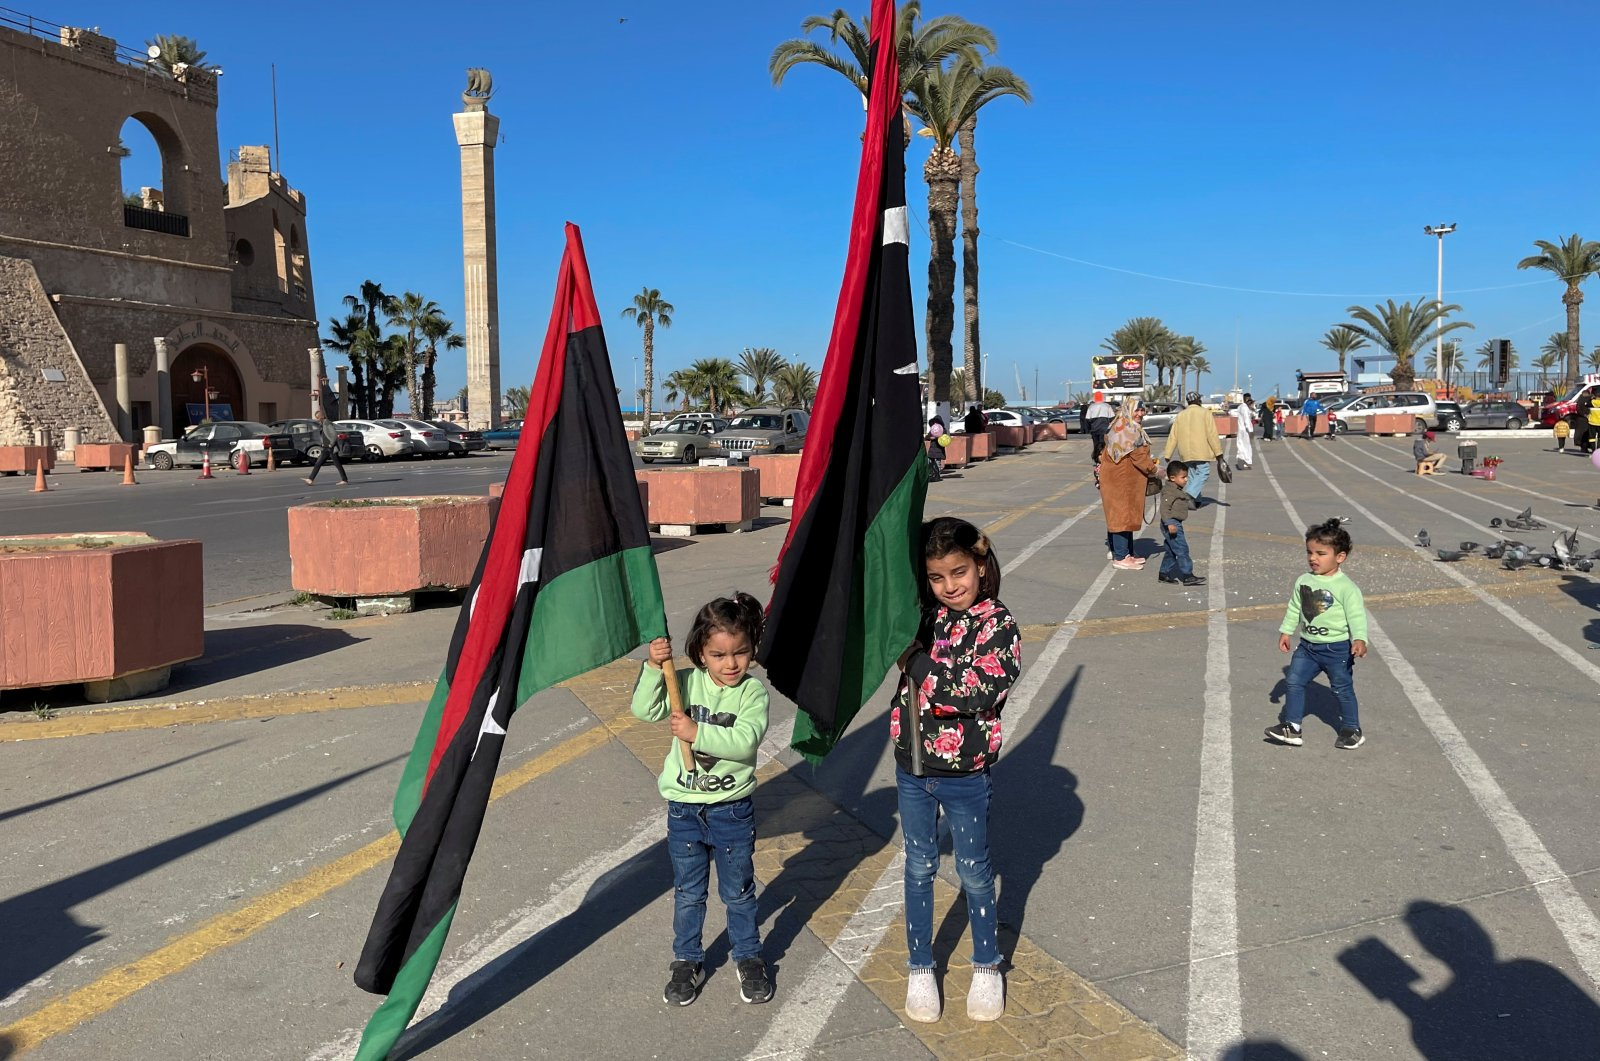 Children carrying Libyan flags pose for photos at Martyrs' Square in Tripoli, Libya, Feb. 5, 2021. (REUTERS Photo)